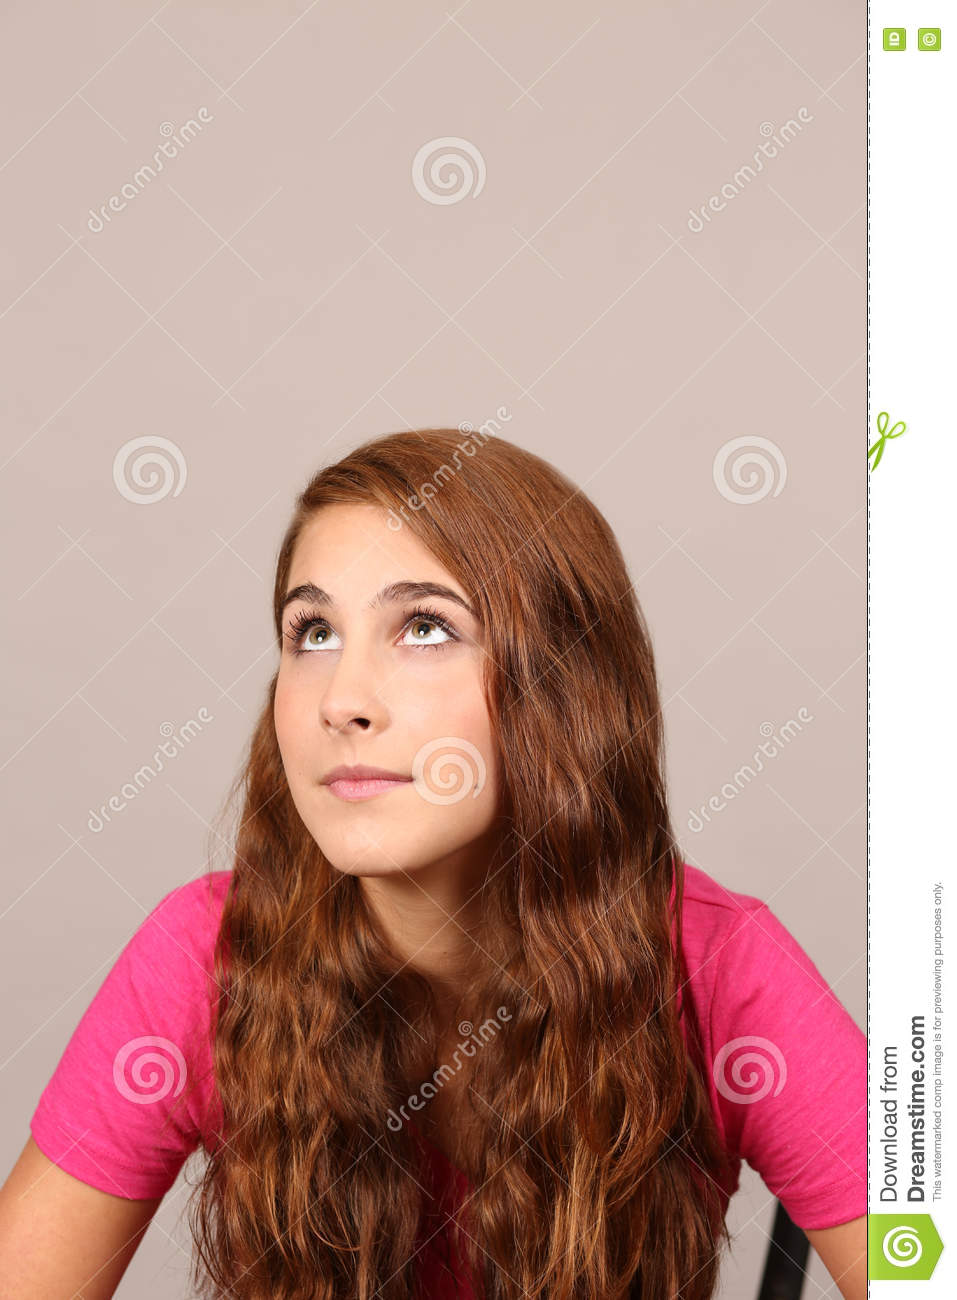 Pretty Teen Girl Looking Up Stock Photo